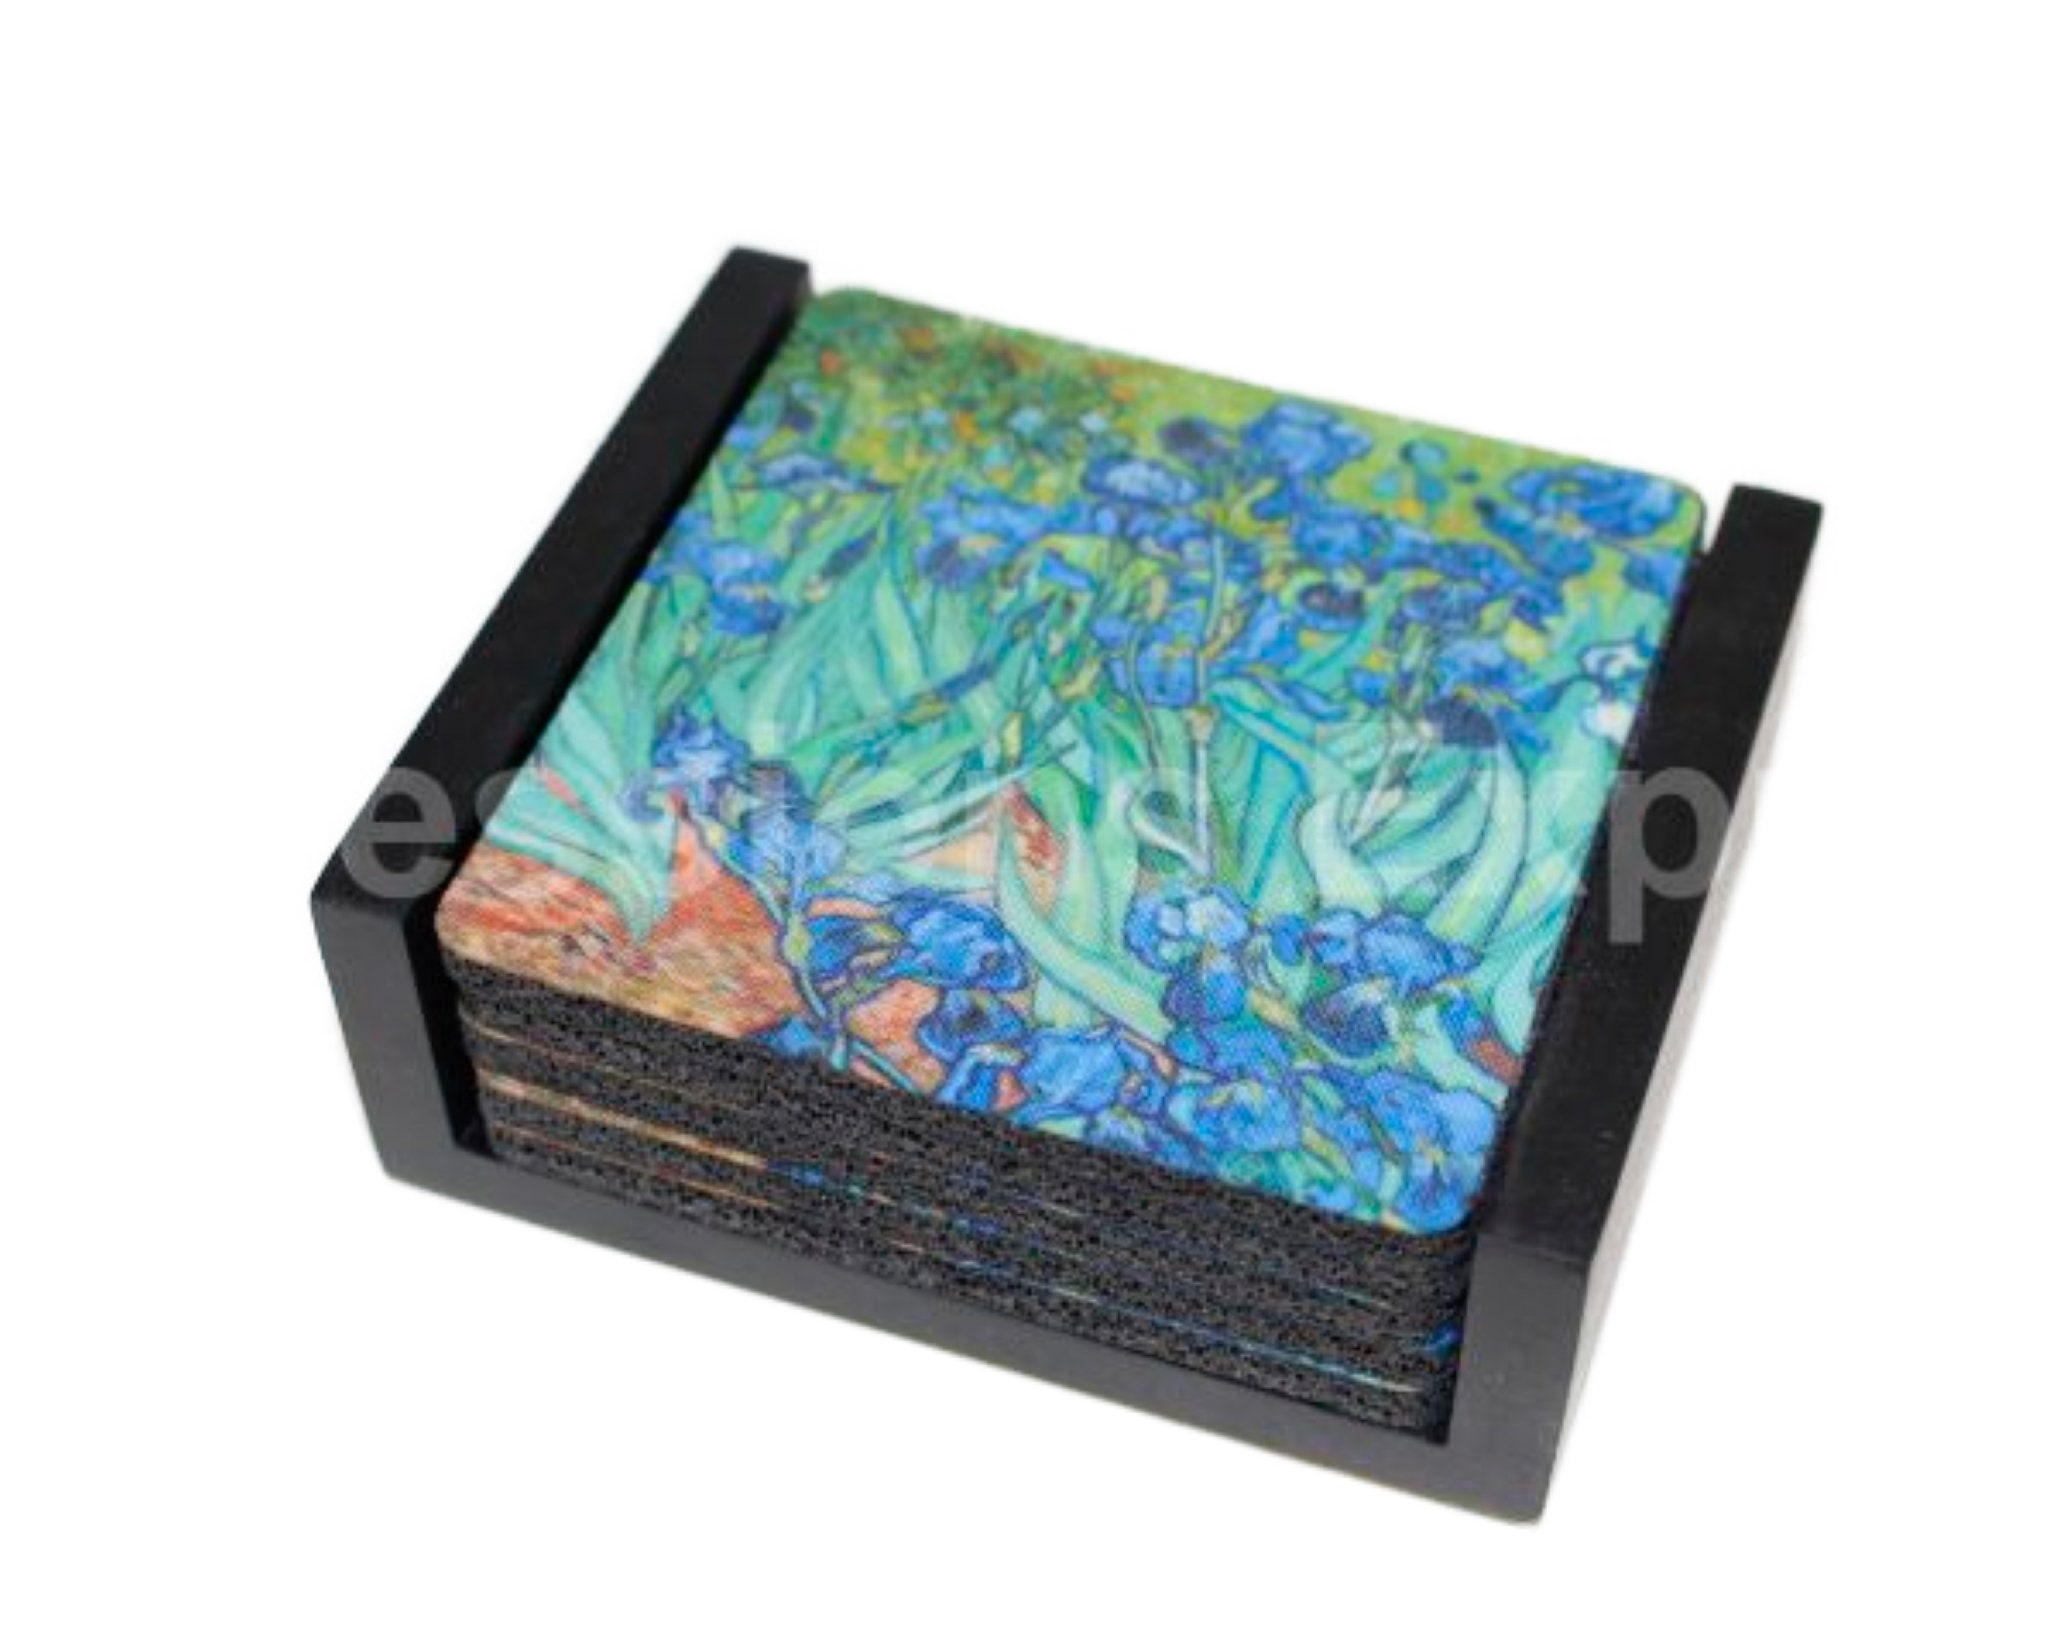 Vincent Van Gogh Irises Painting Coaster Set Of 5 With Wood Holder